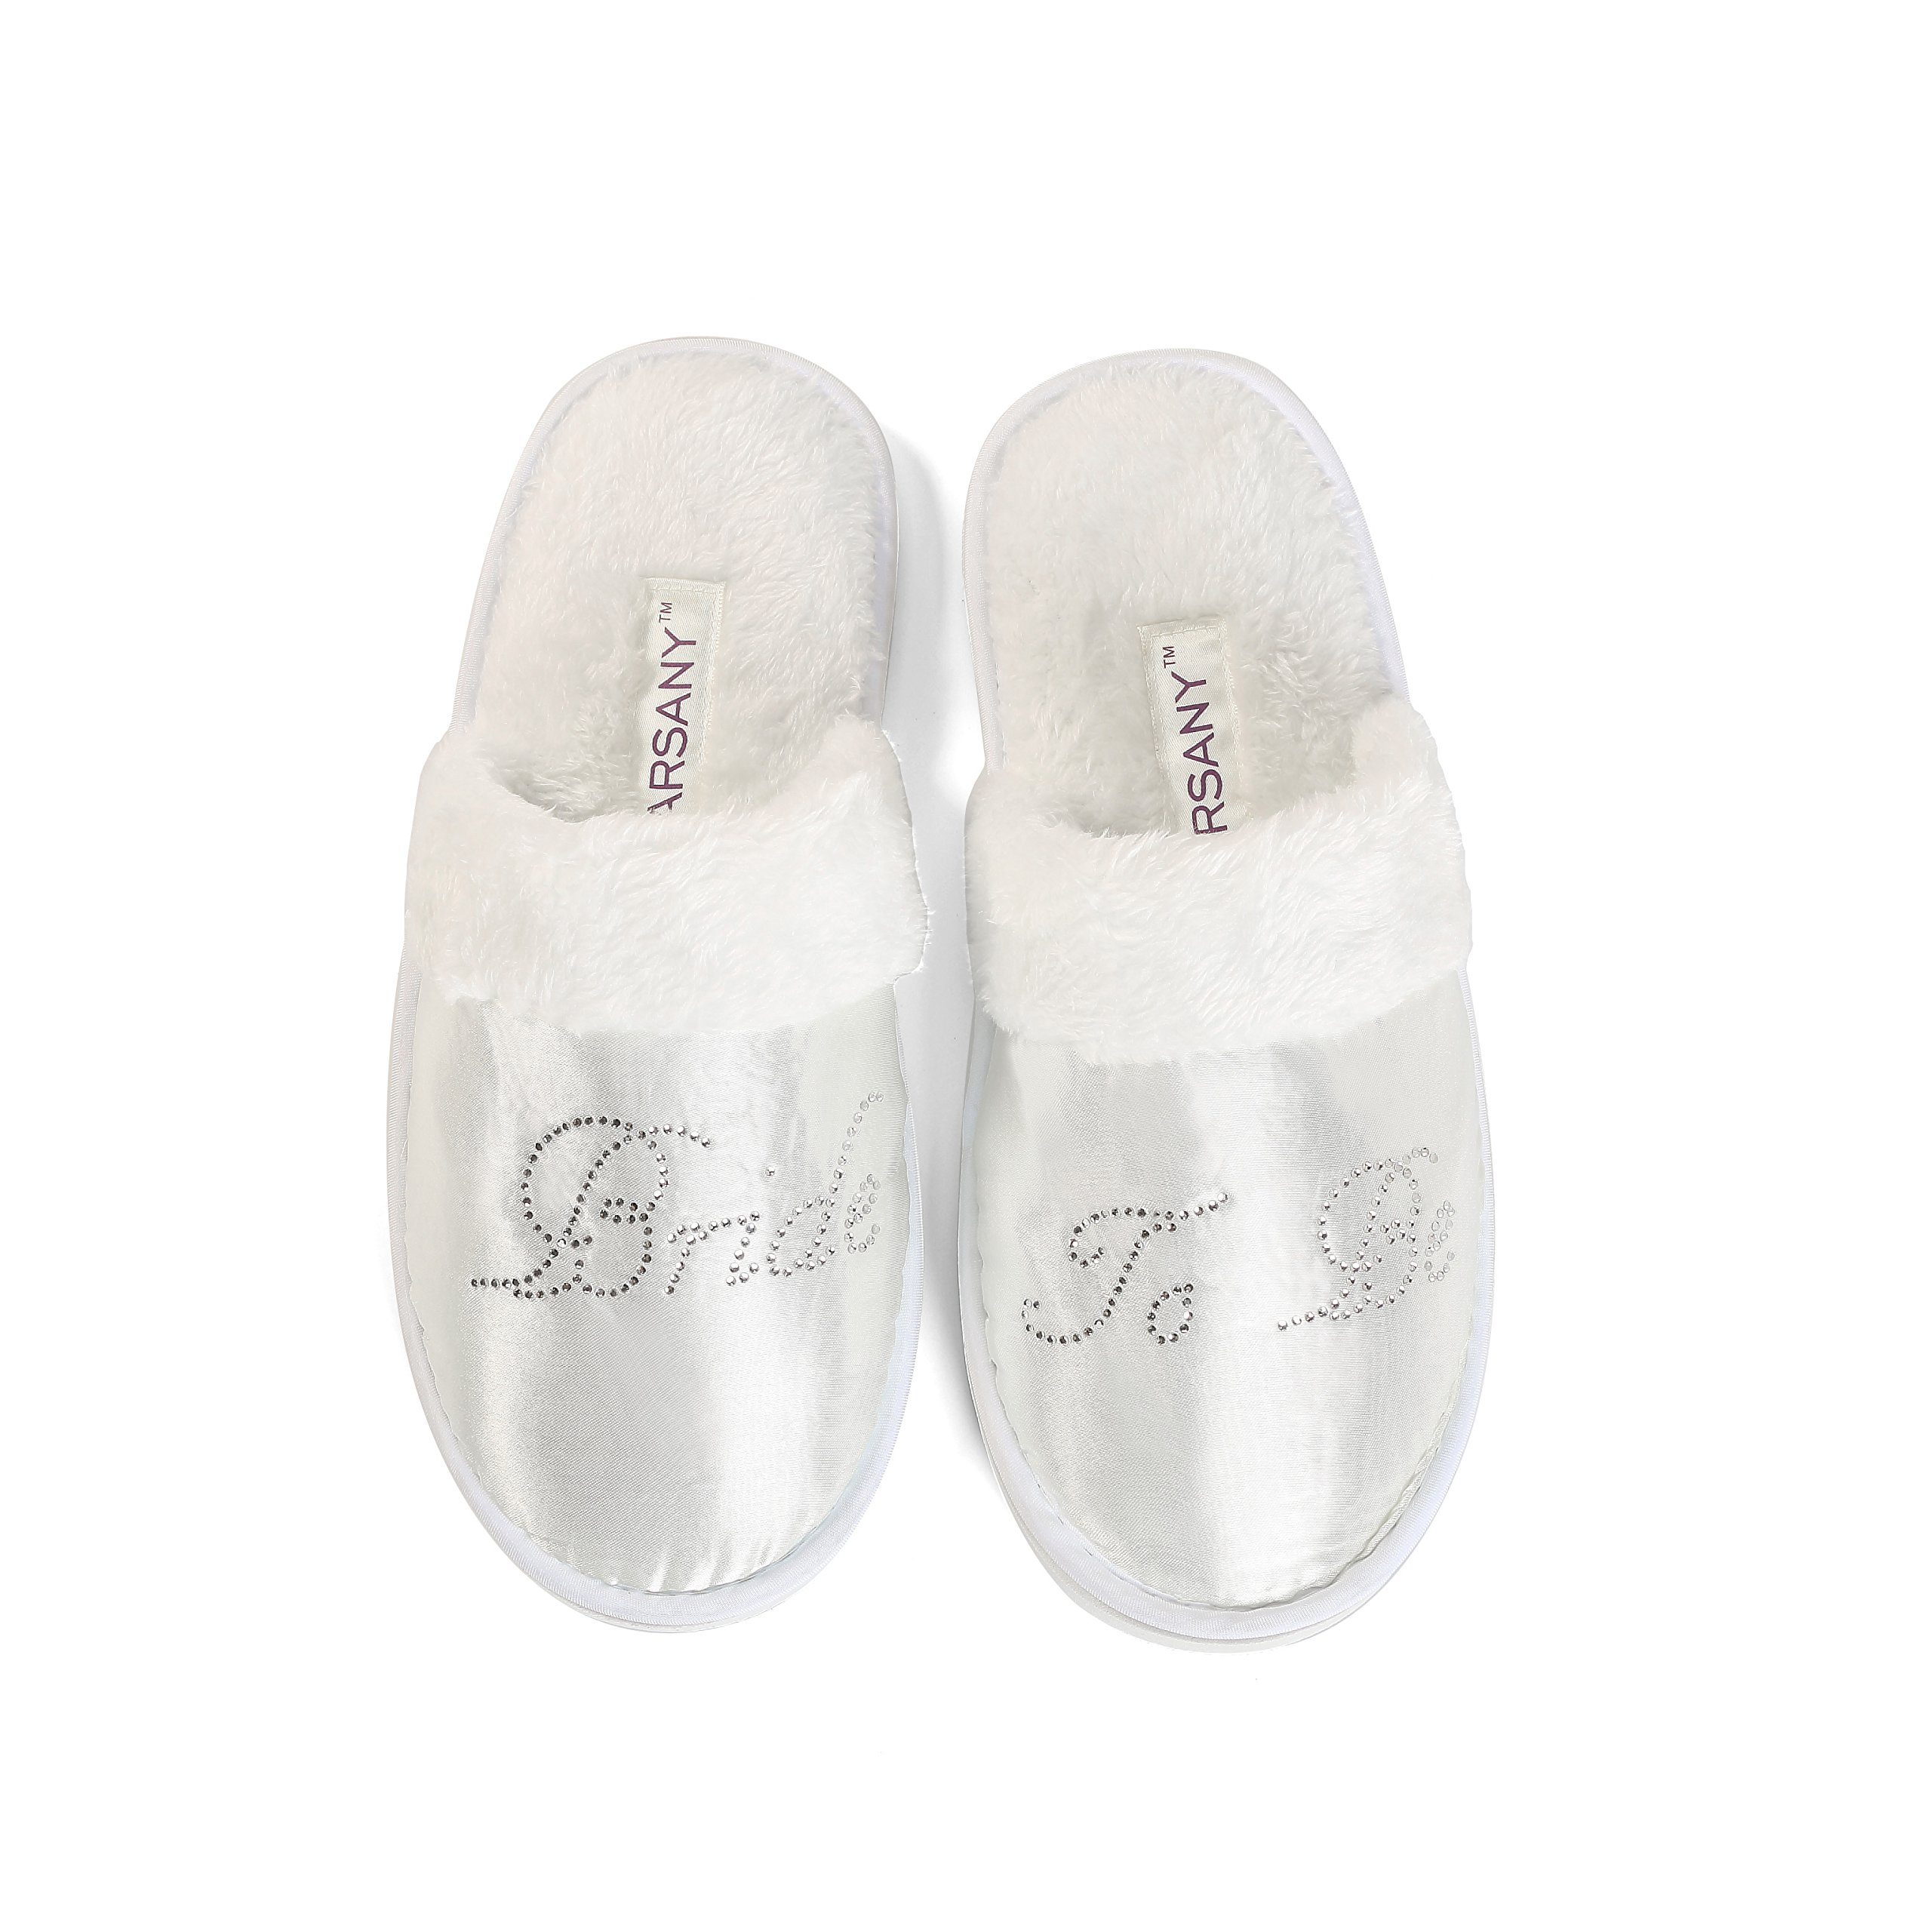 Clear Bride To Be Spa Slippers Hen party Wedding Diamante rhinestone crystal hotel honeymoon slippers